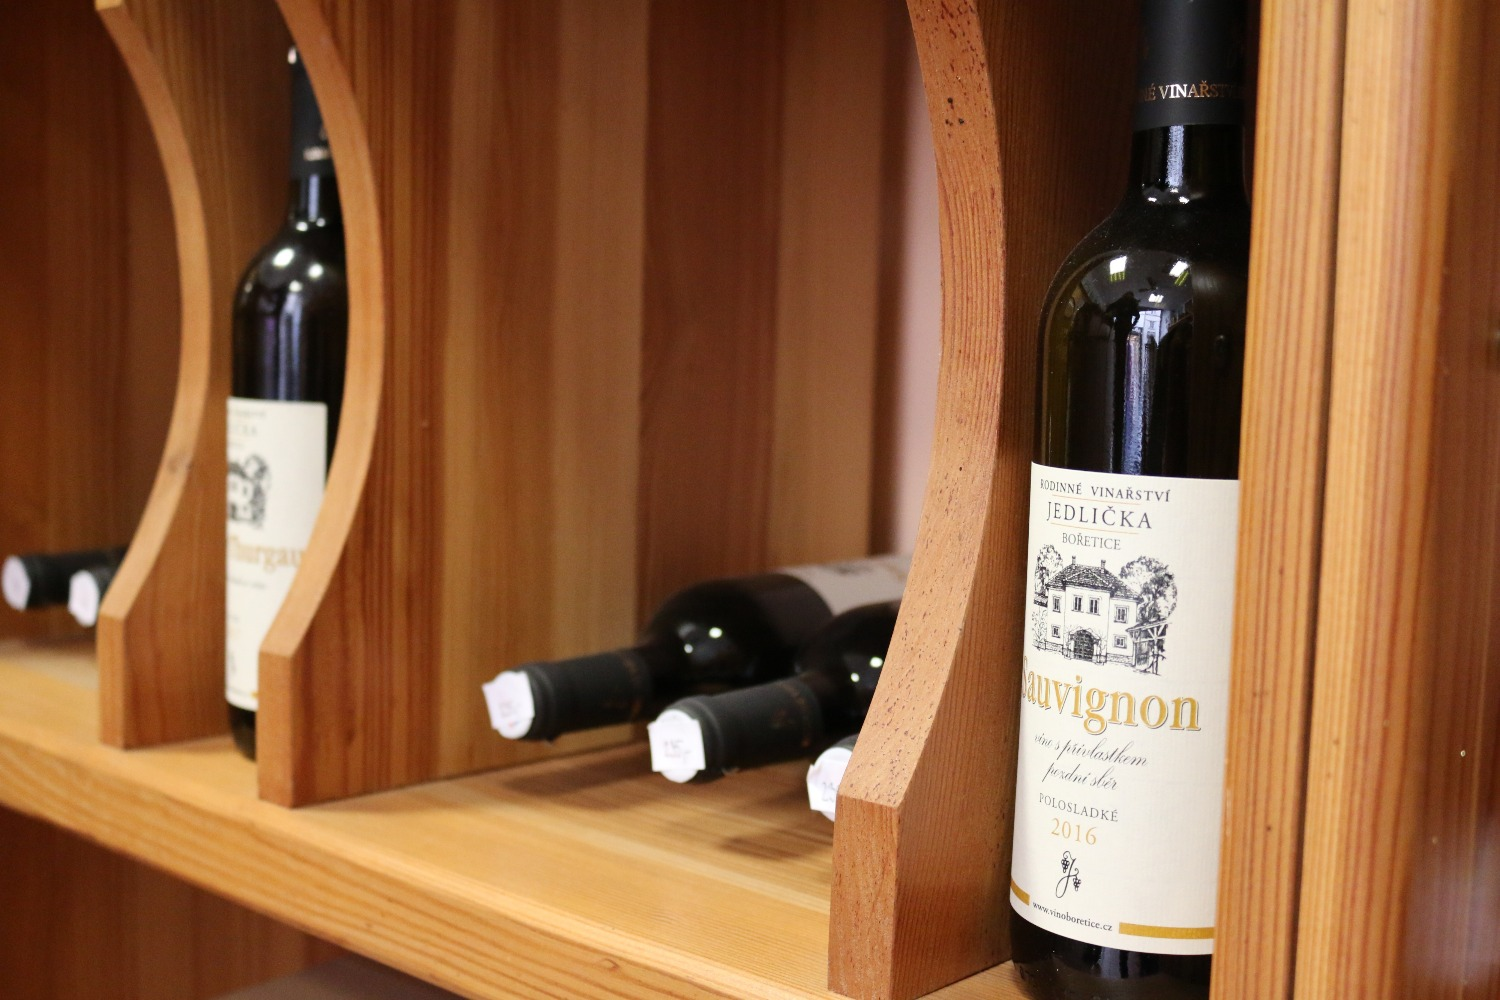 Vinoteka featuring wines exclusively from Jedlička winery